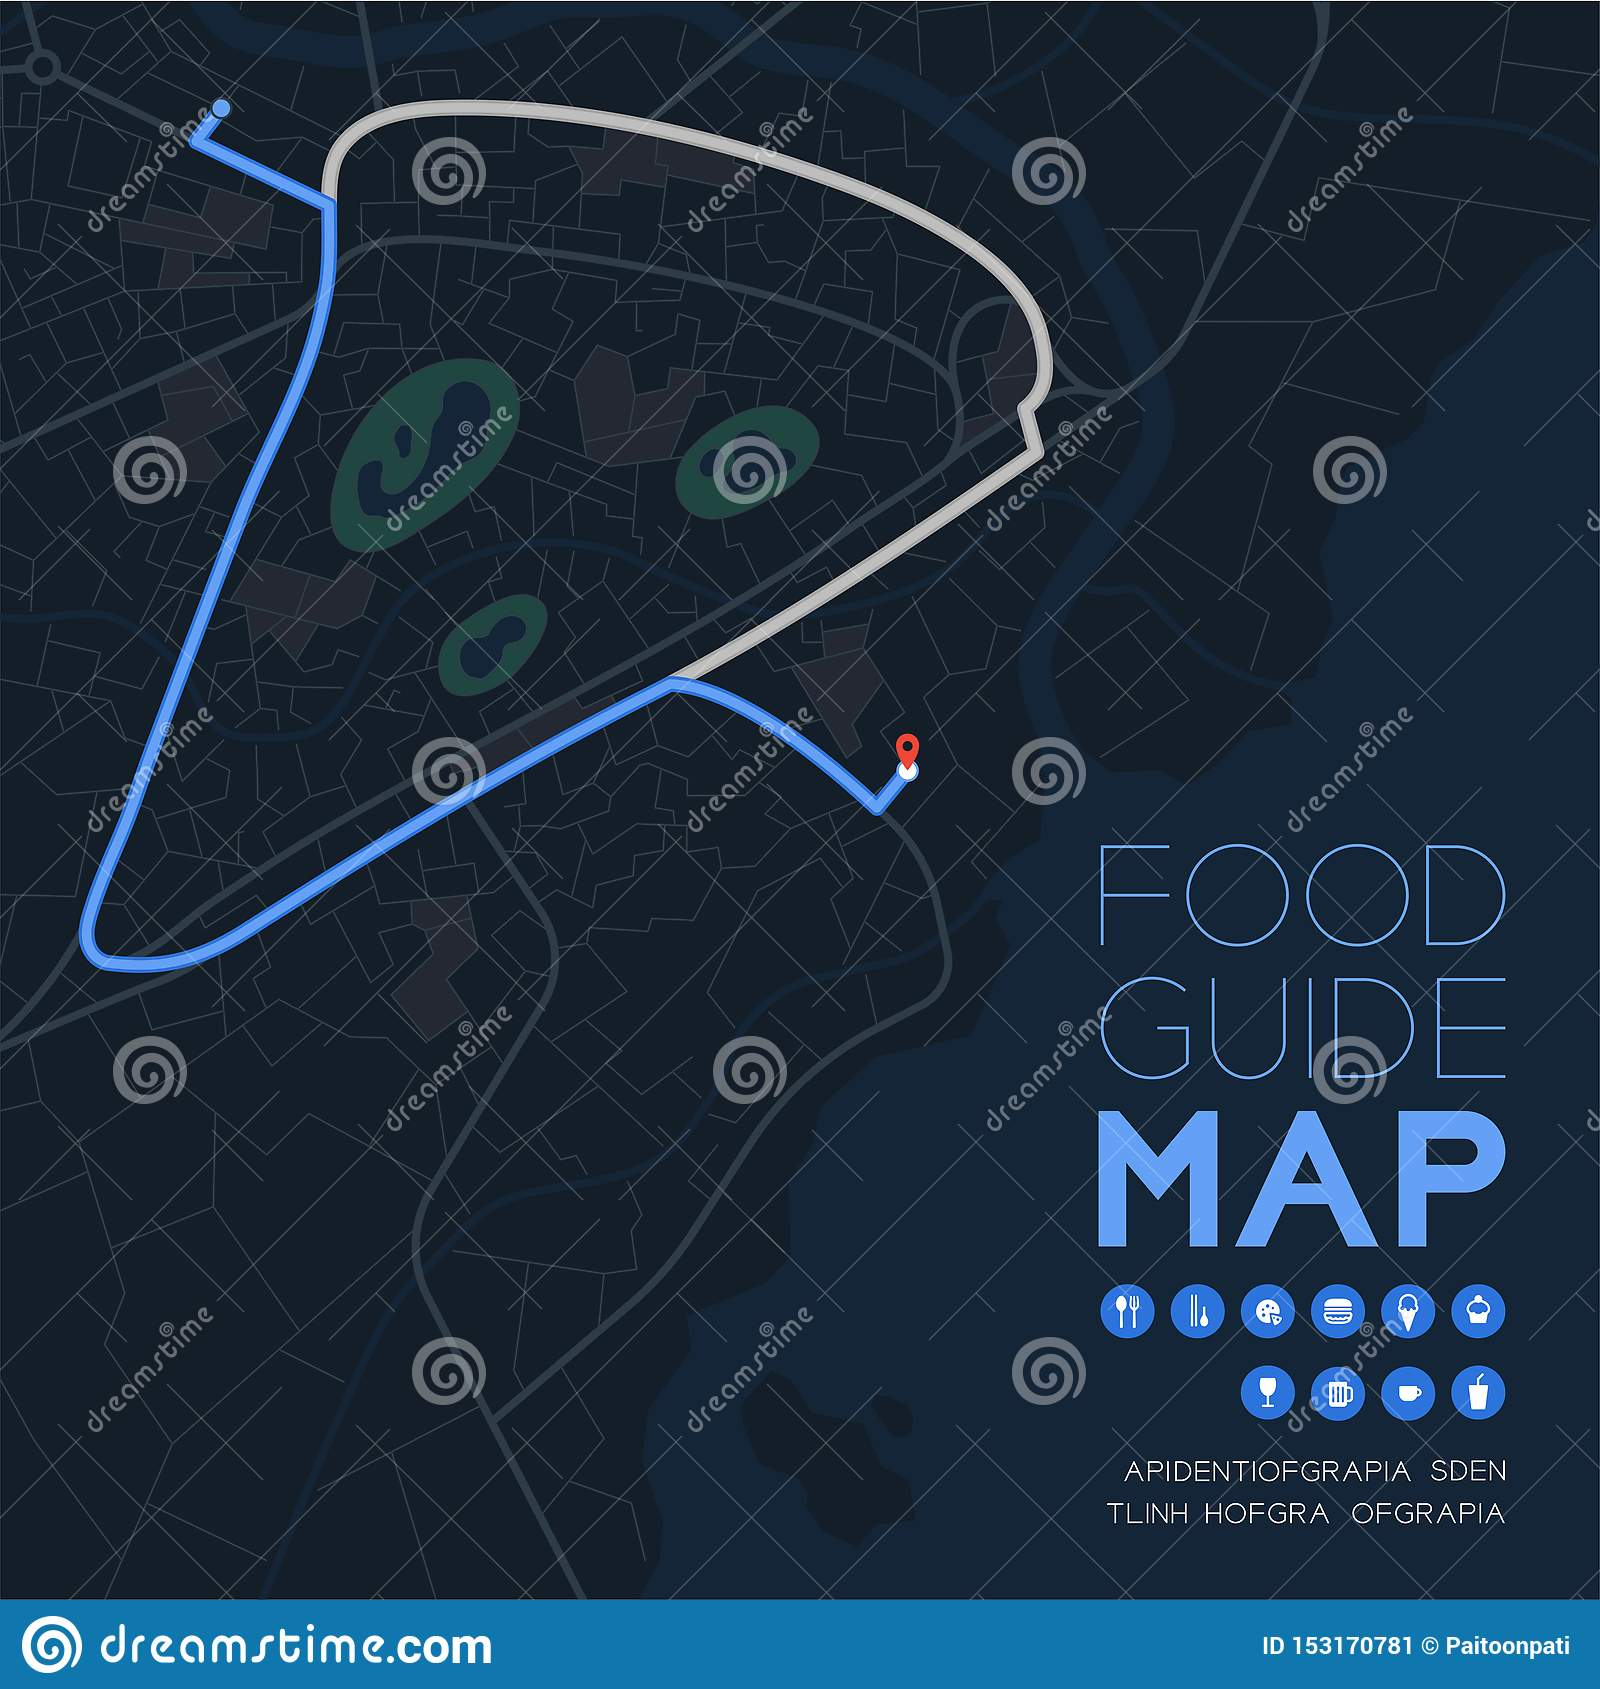 Food guide direction map travel with icon concept, Road pizza shape design in nighttime mode illustration isolated on grey